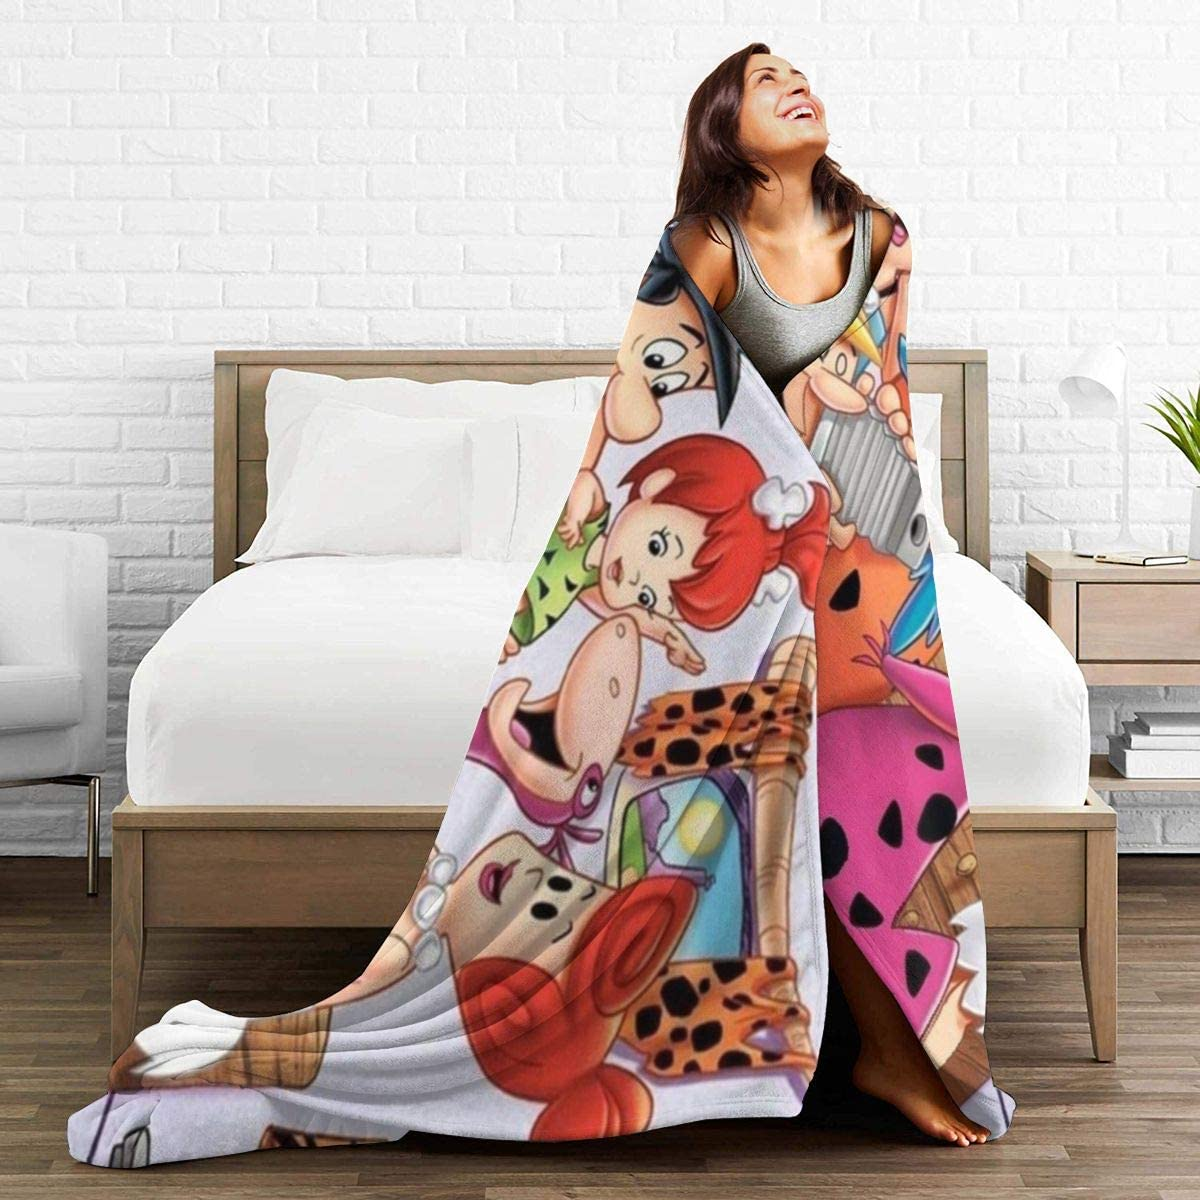 The-Flintstones Blanket Soft and Warm Flannel Fluffy Lightweight Breathable Throw for Cinema Yoga Camping Picnic Travel Beach Home Size for Kids Teens Adults 60X50